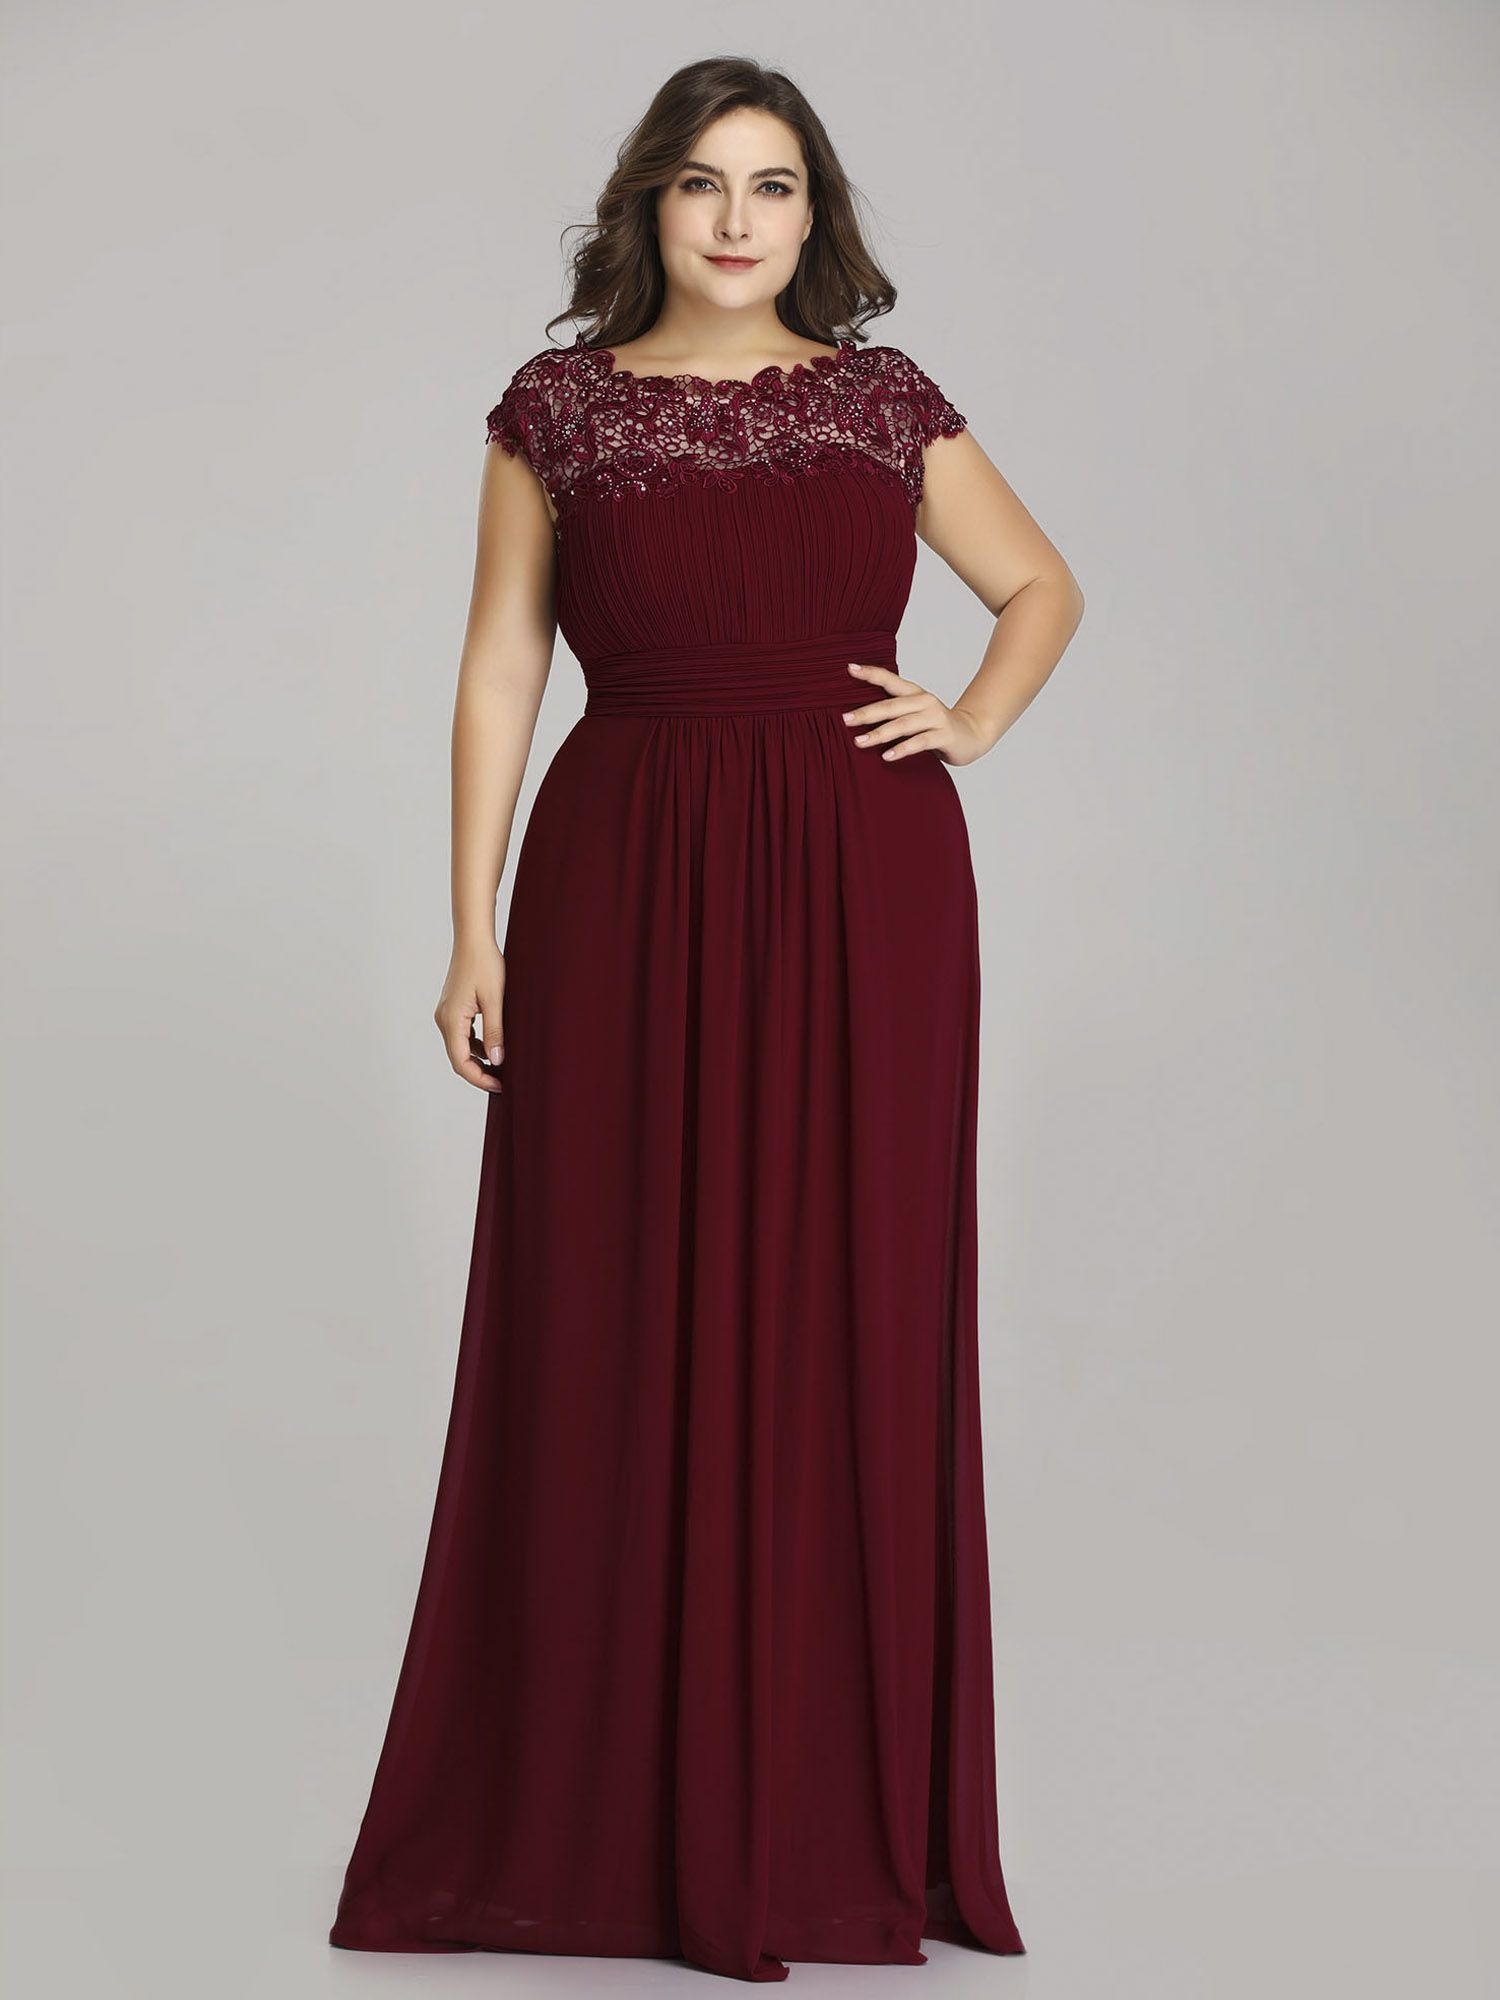 bd25291c7b Ever-Pretty Womens Elegant Lacey Winter Formal Long Evening Holiday Party  Maxi Dresses for Women 9993 Green US 16#Formal, #Winter, #Evening